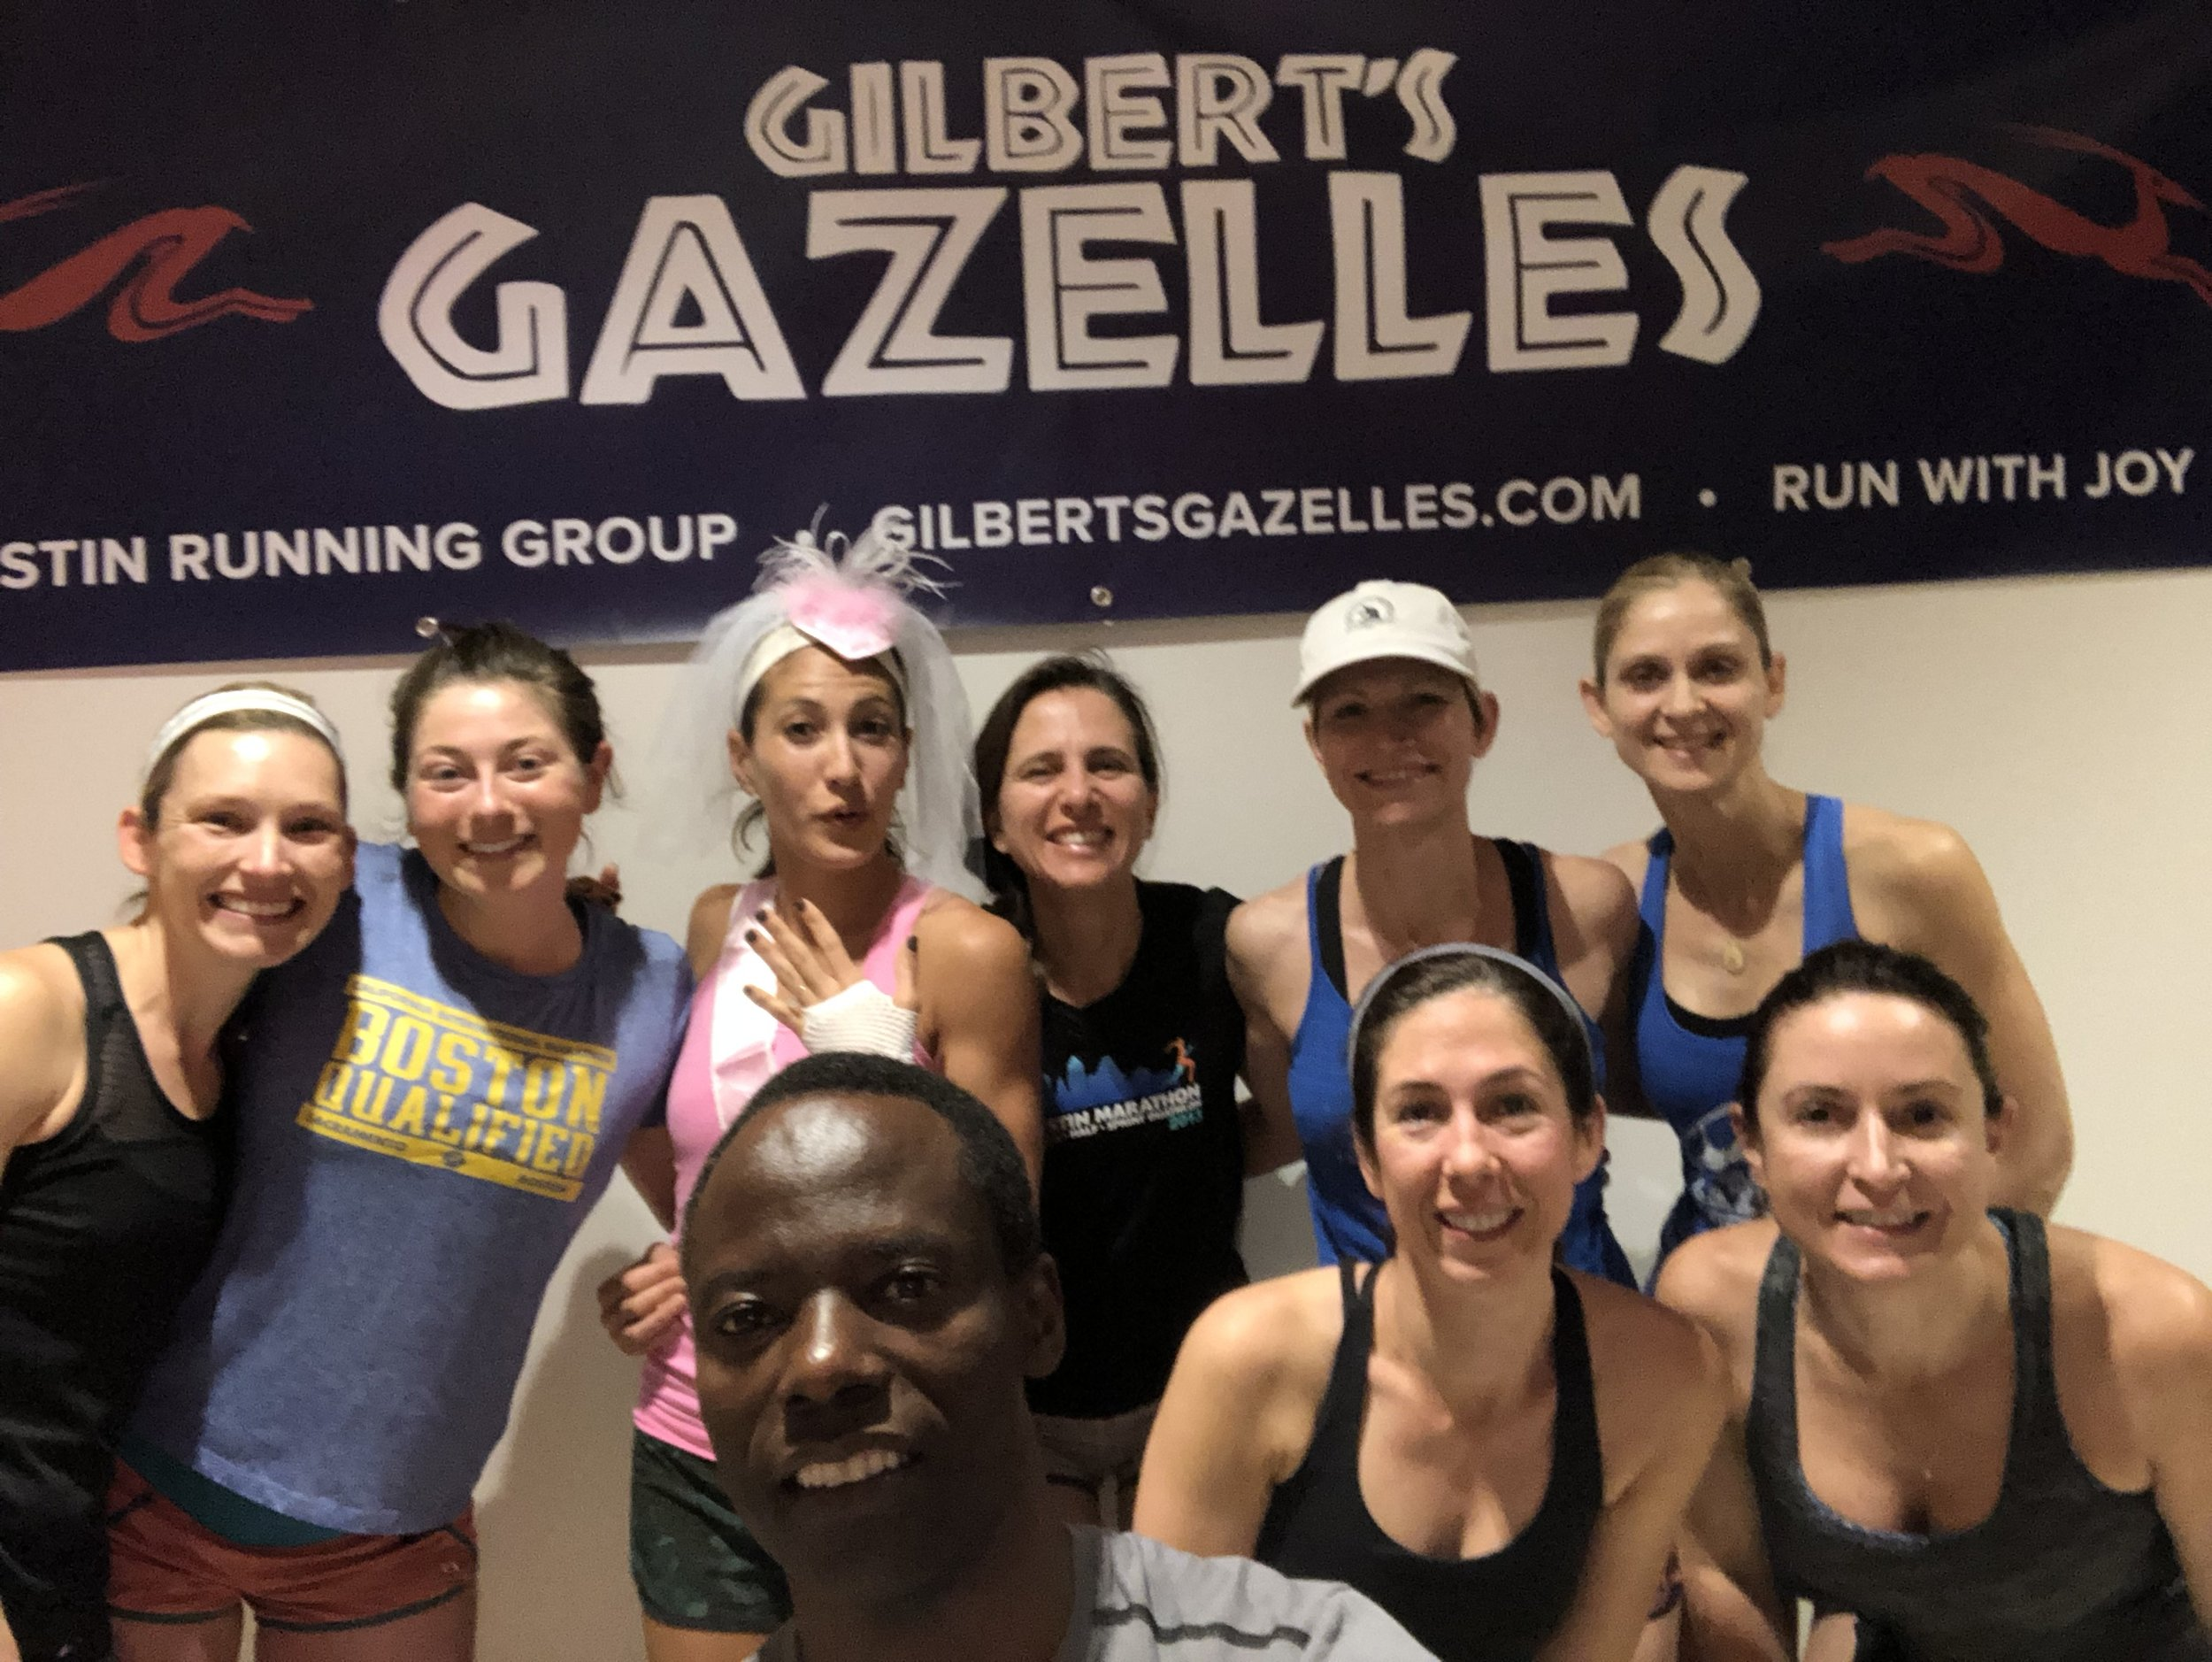 """Congratulations to Gazelle Scottee (Reid) Downing who married Sean Downing on 3/31. Her Gazelle friends had a """"bridal"""" run last week to celebrate."""